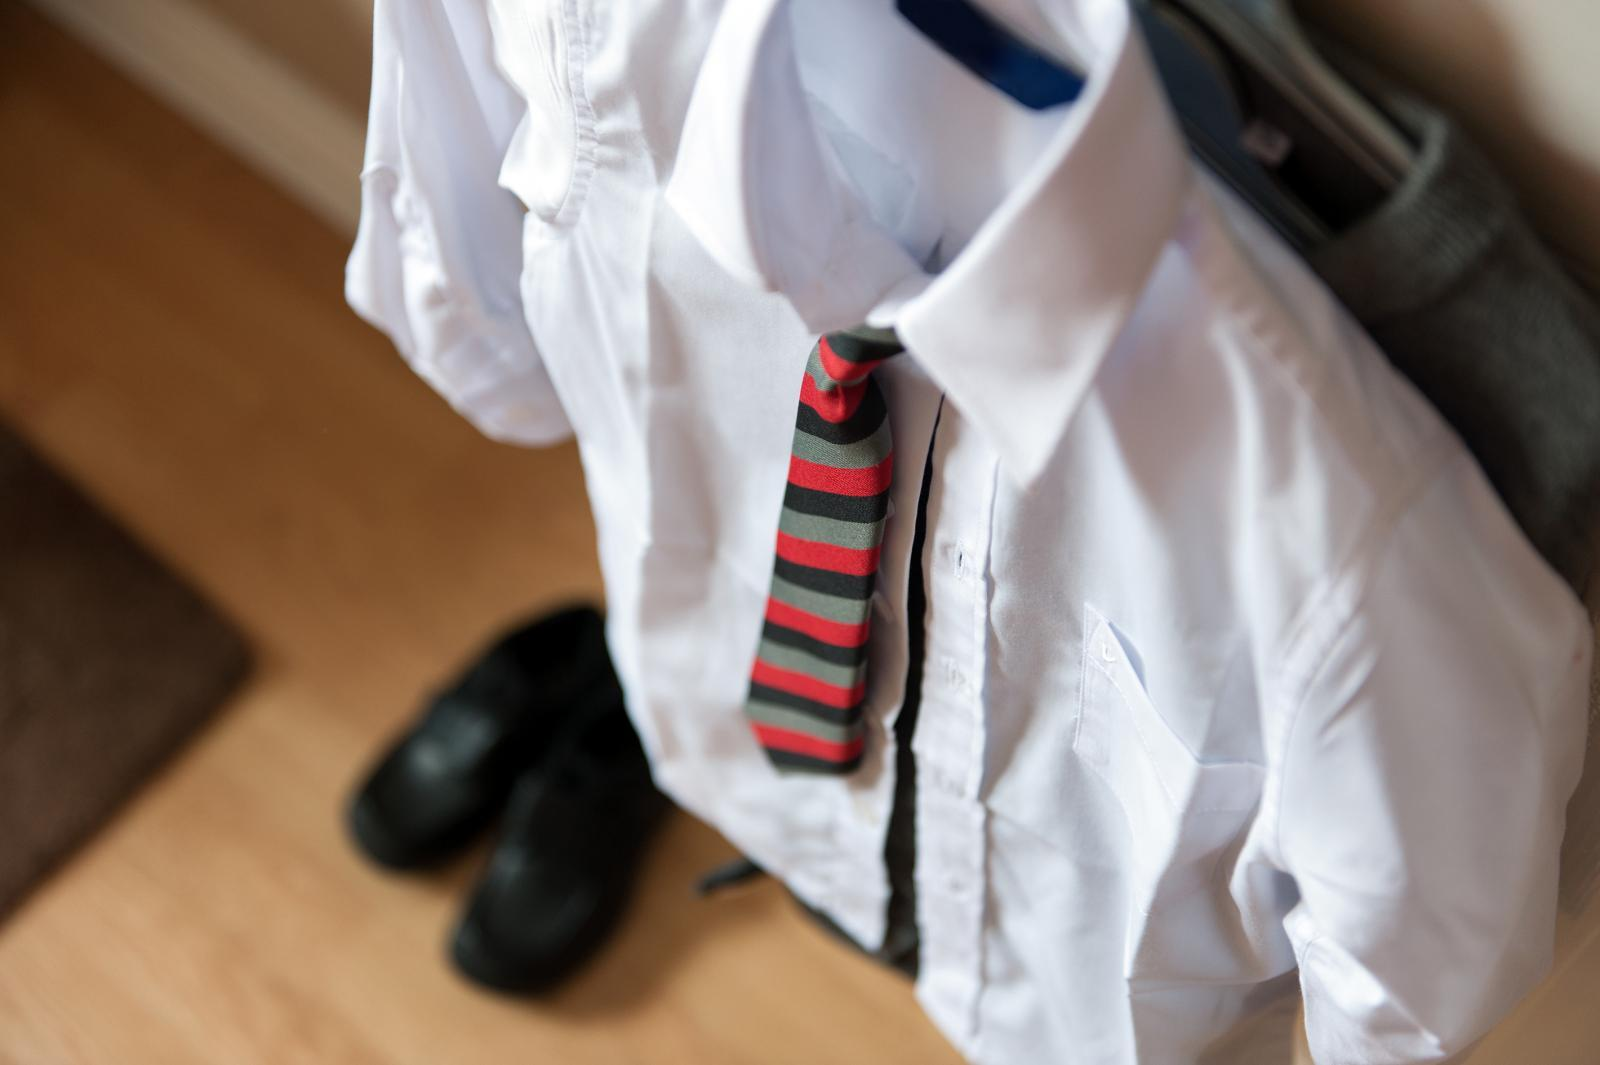 School uniform hanging up - shirt and tie